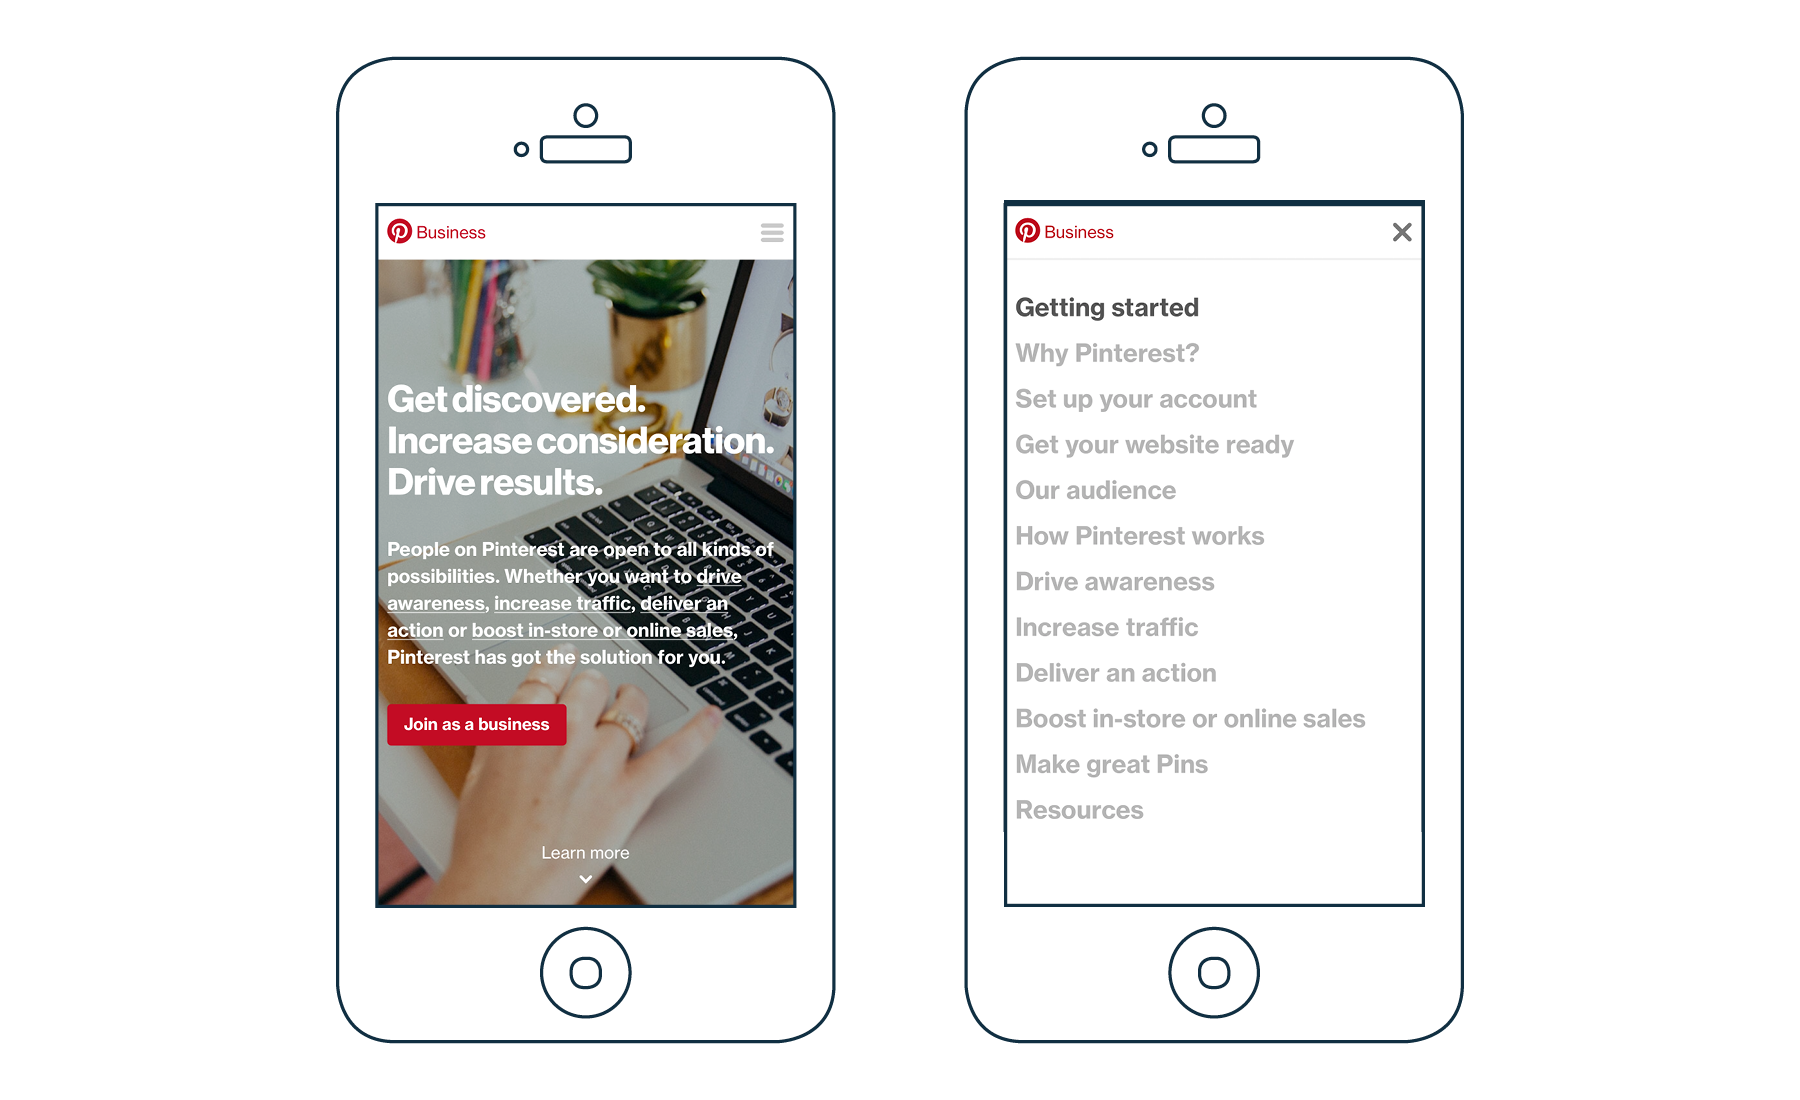 Pinterest for Business homepage on mobile